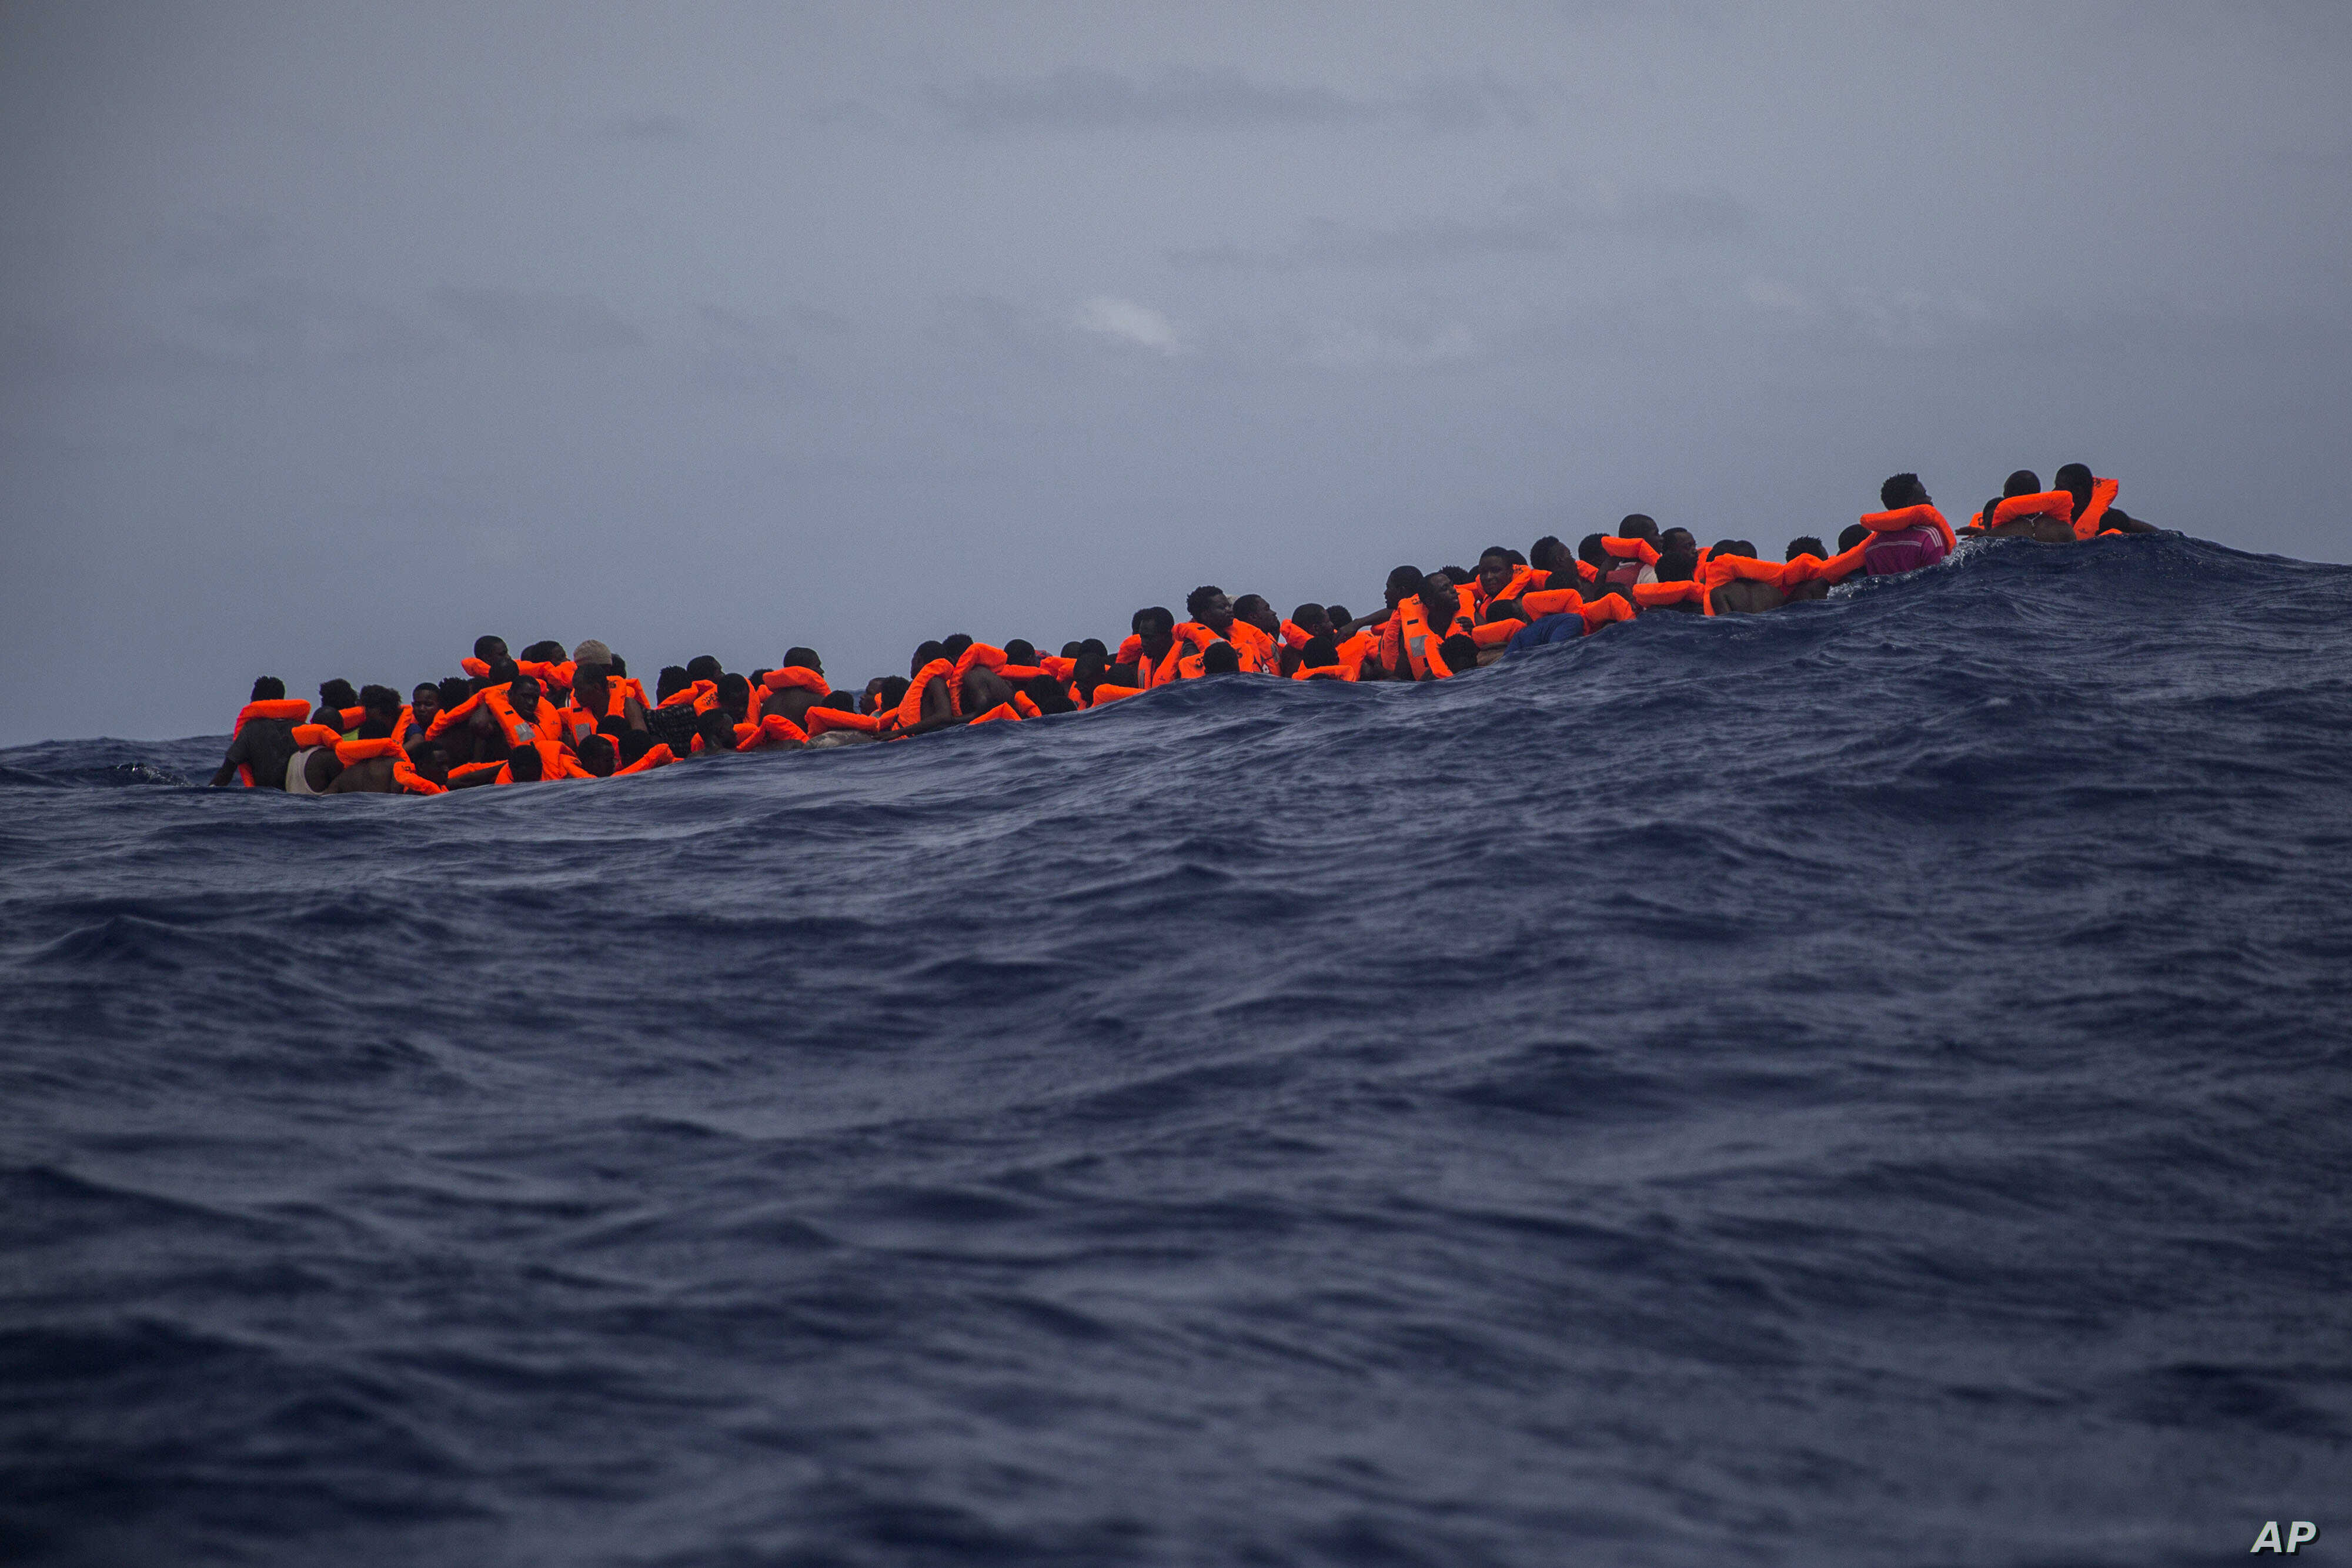 Migrants wait to be rescued by aid workers of Spanish NGO Proactiva Open Arms in the Mediterranean Sea, about 15 miles north of Sabratha, Libya on July 25, 2017. More than 120 migrants were rescued Tuesday from the Mediterranean Sea while many — in...